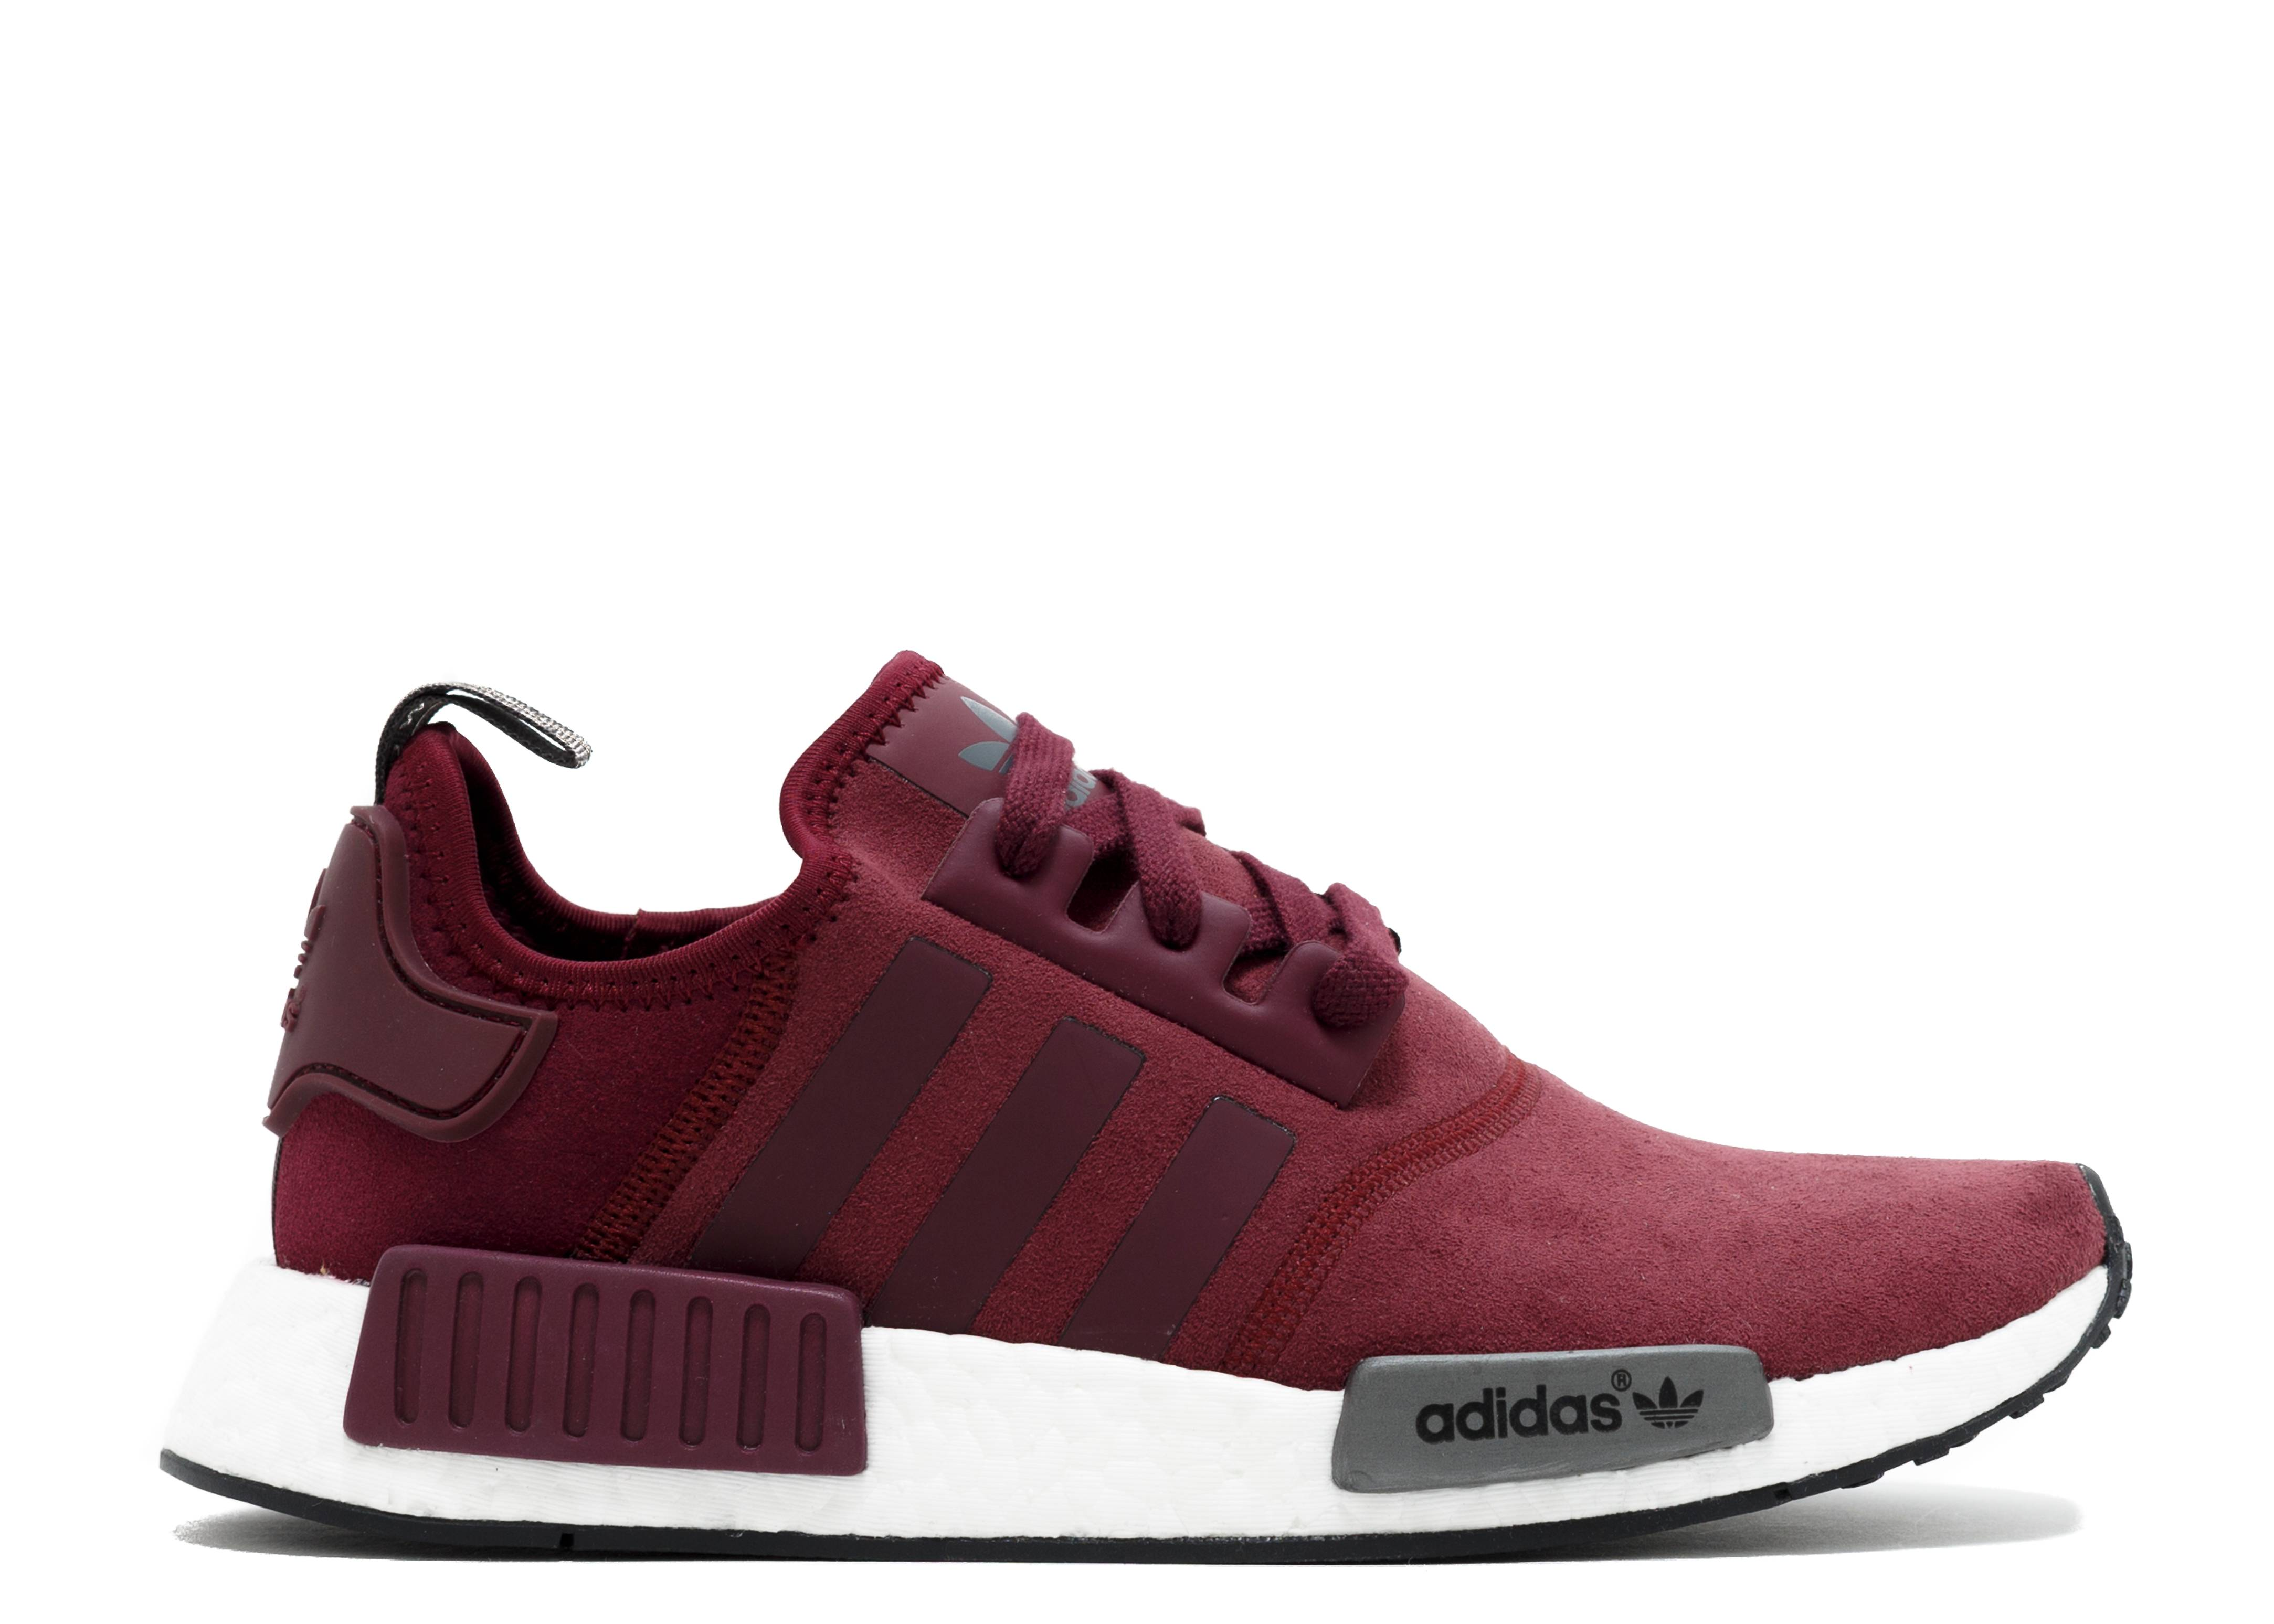 fb8ca64903789 Nmd R1 W - Adidas - s75231 - burgundy black white